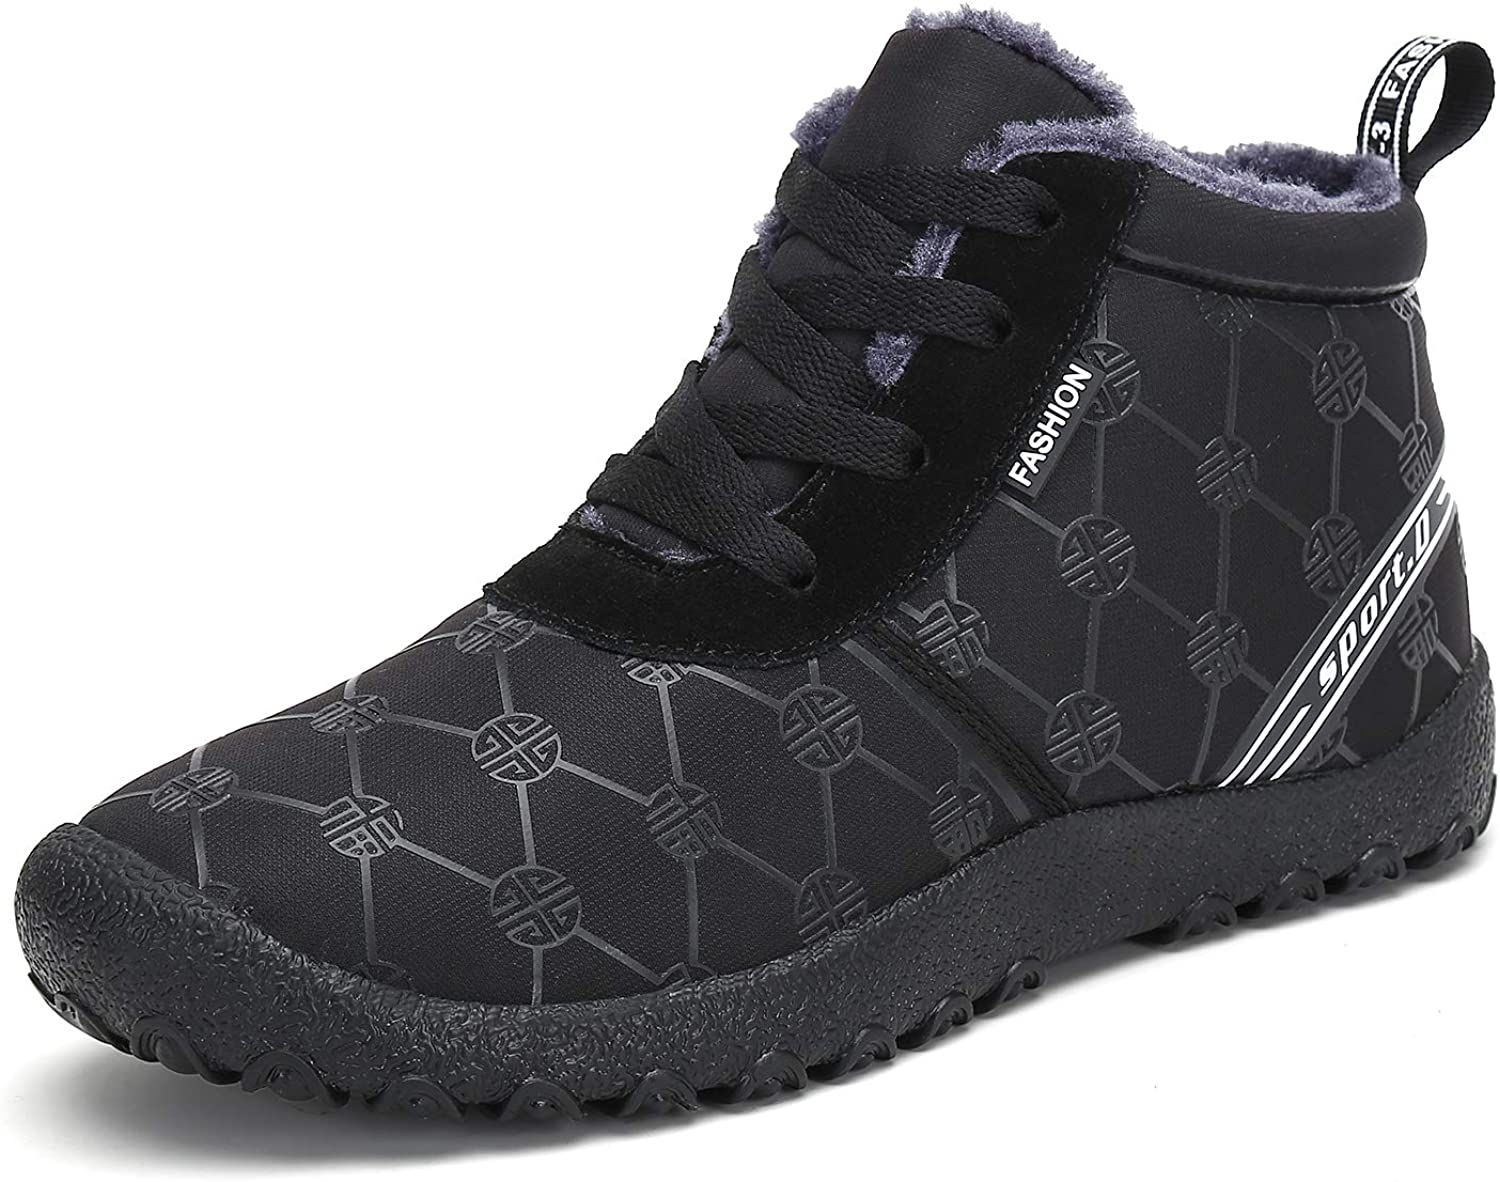 Voovix Women's Snow Boots Winter Warm Fur Lined Ankle Booties Lightweight Non Slip Outdoor shoes(Black,36)